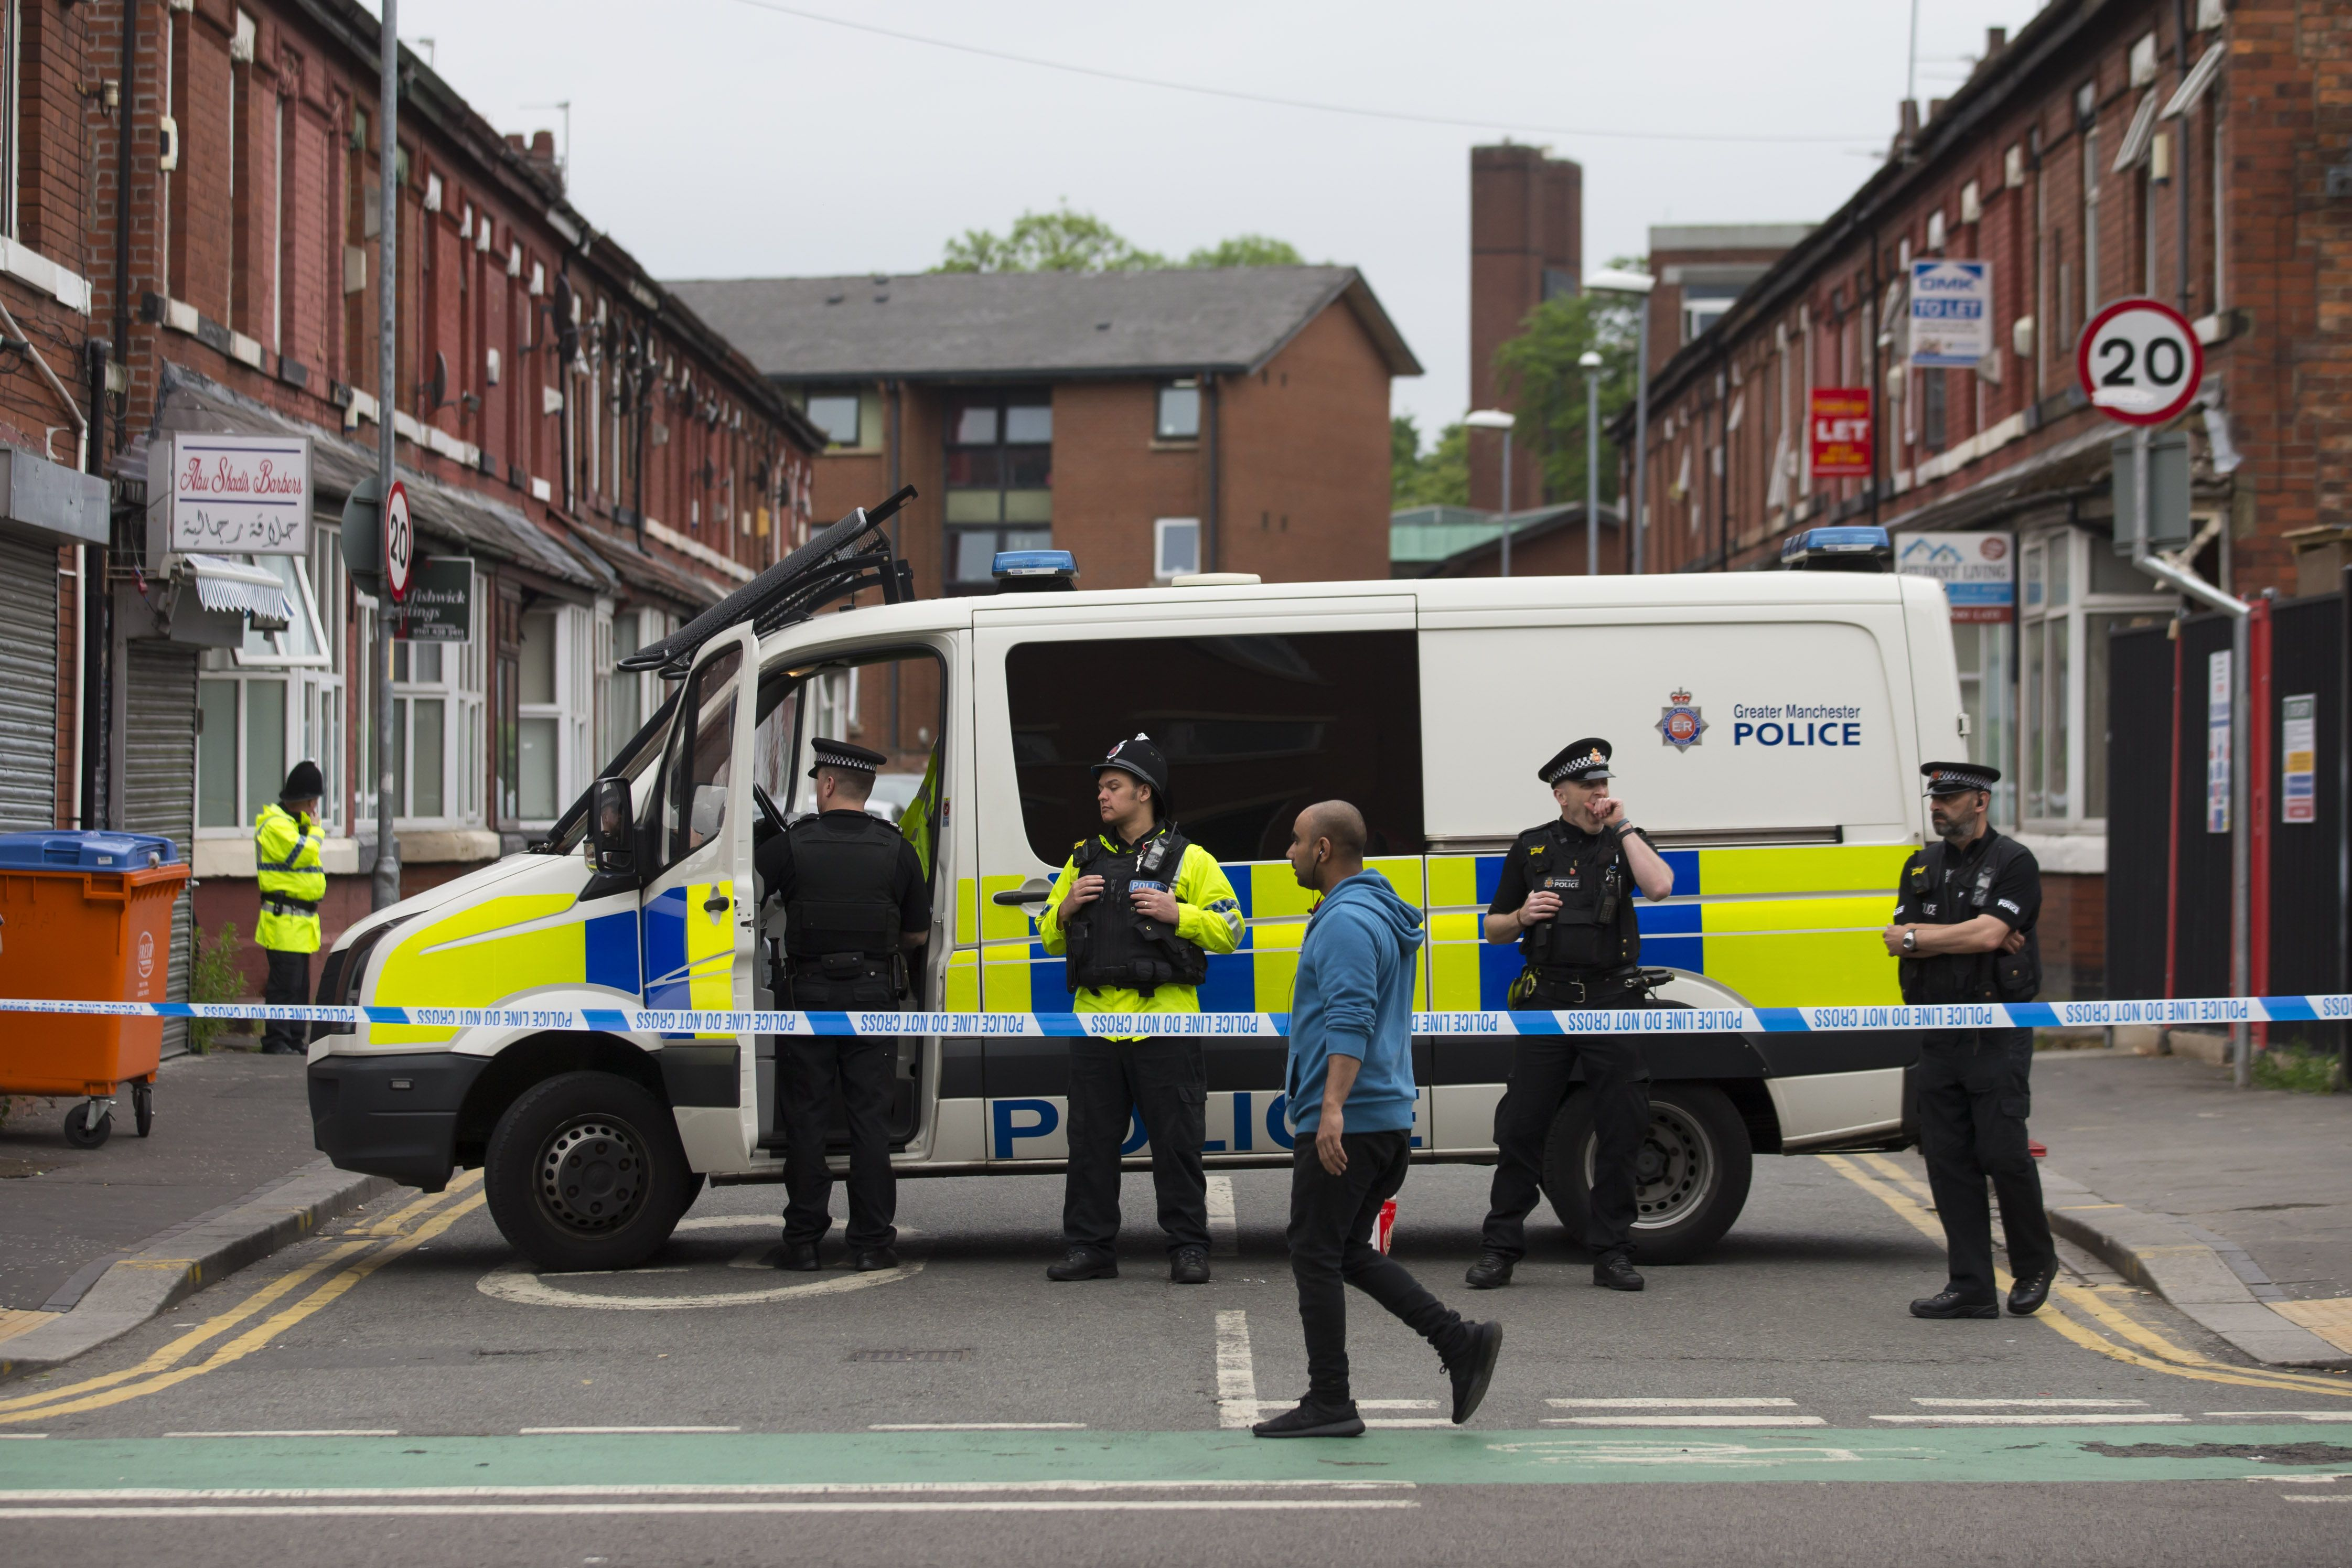 Police officers stand guard on May 29, 2017, as they continue their investigations in the wake of the May 22 Manchester Arena bomb attack.